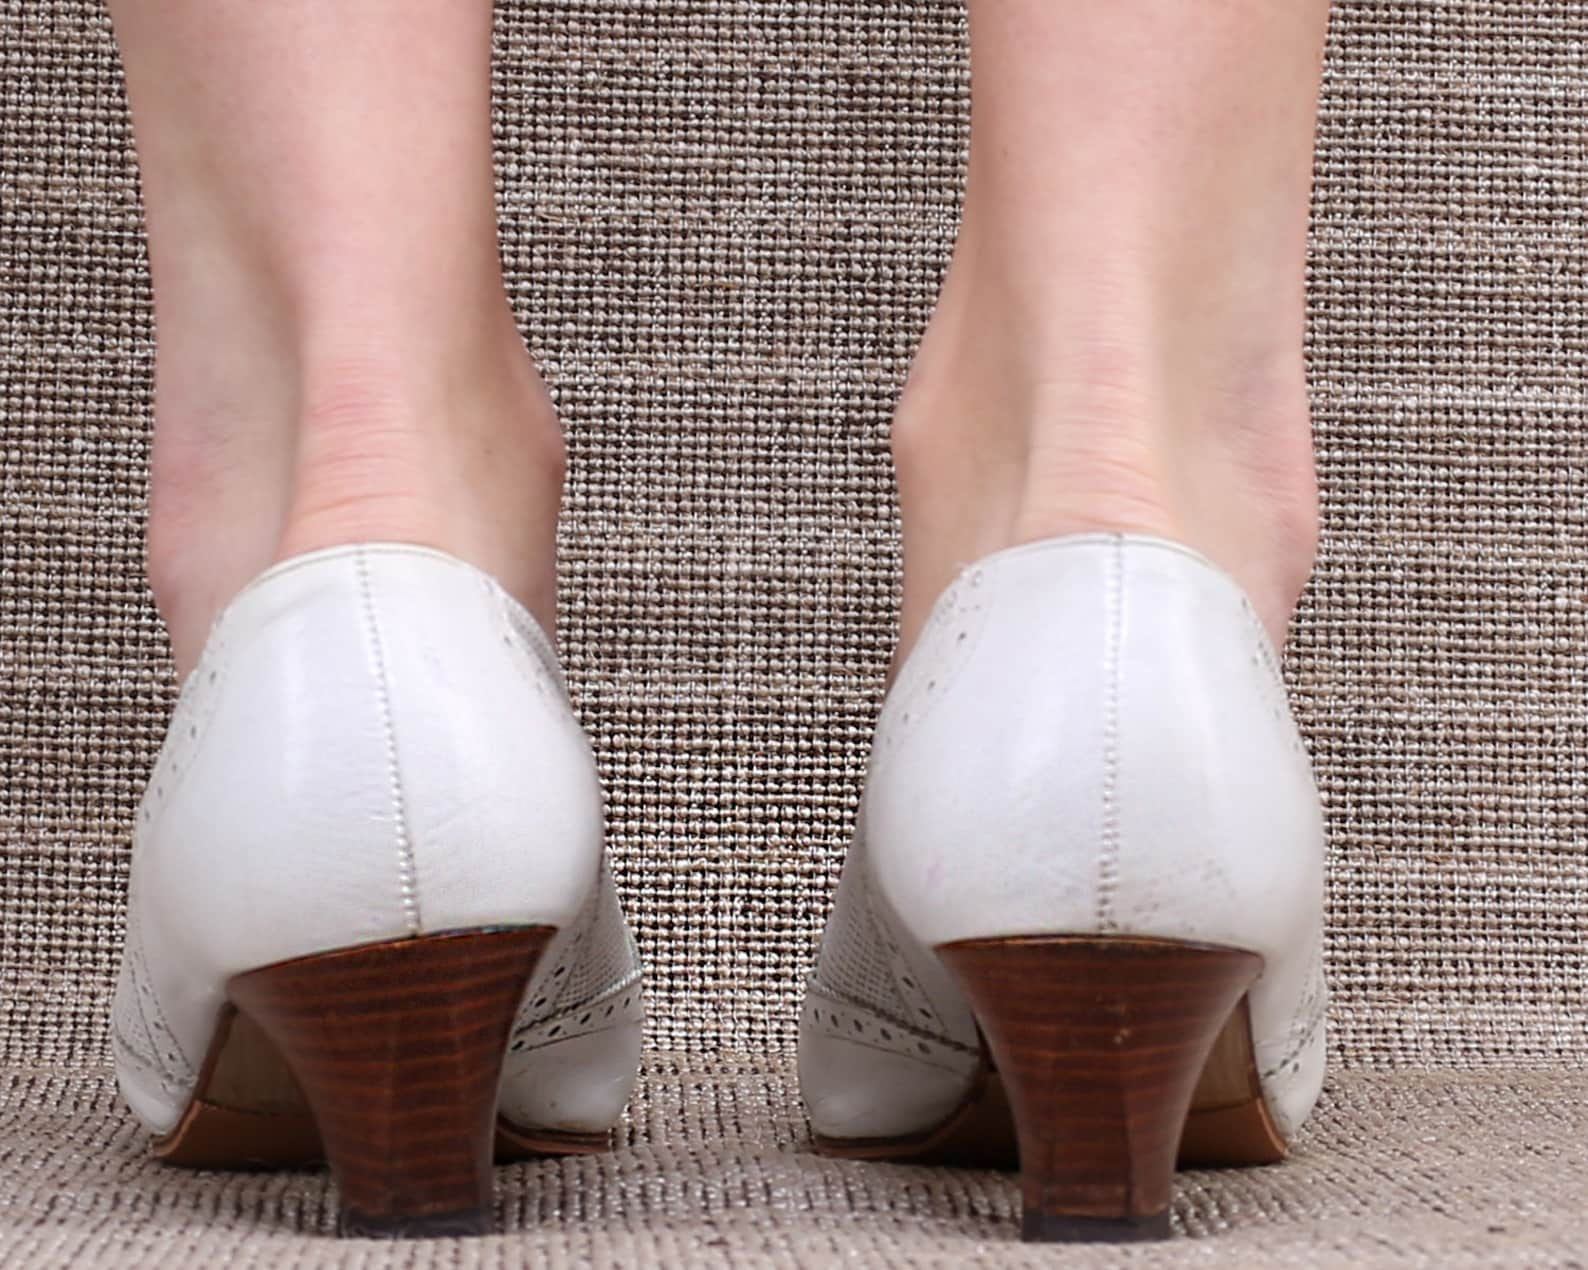 us size 7.5 white leather flats 80s oxford pumps white ballet slip ons stacked heel vintage shoes 1980s germany made. eur 38 uk